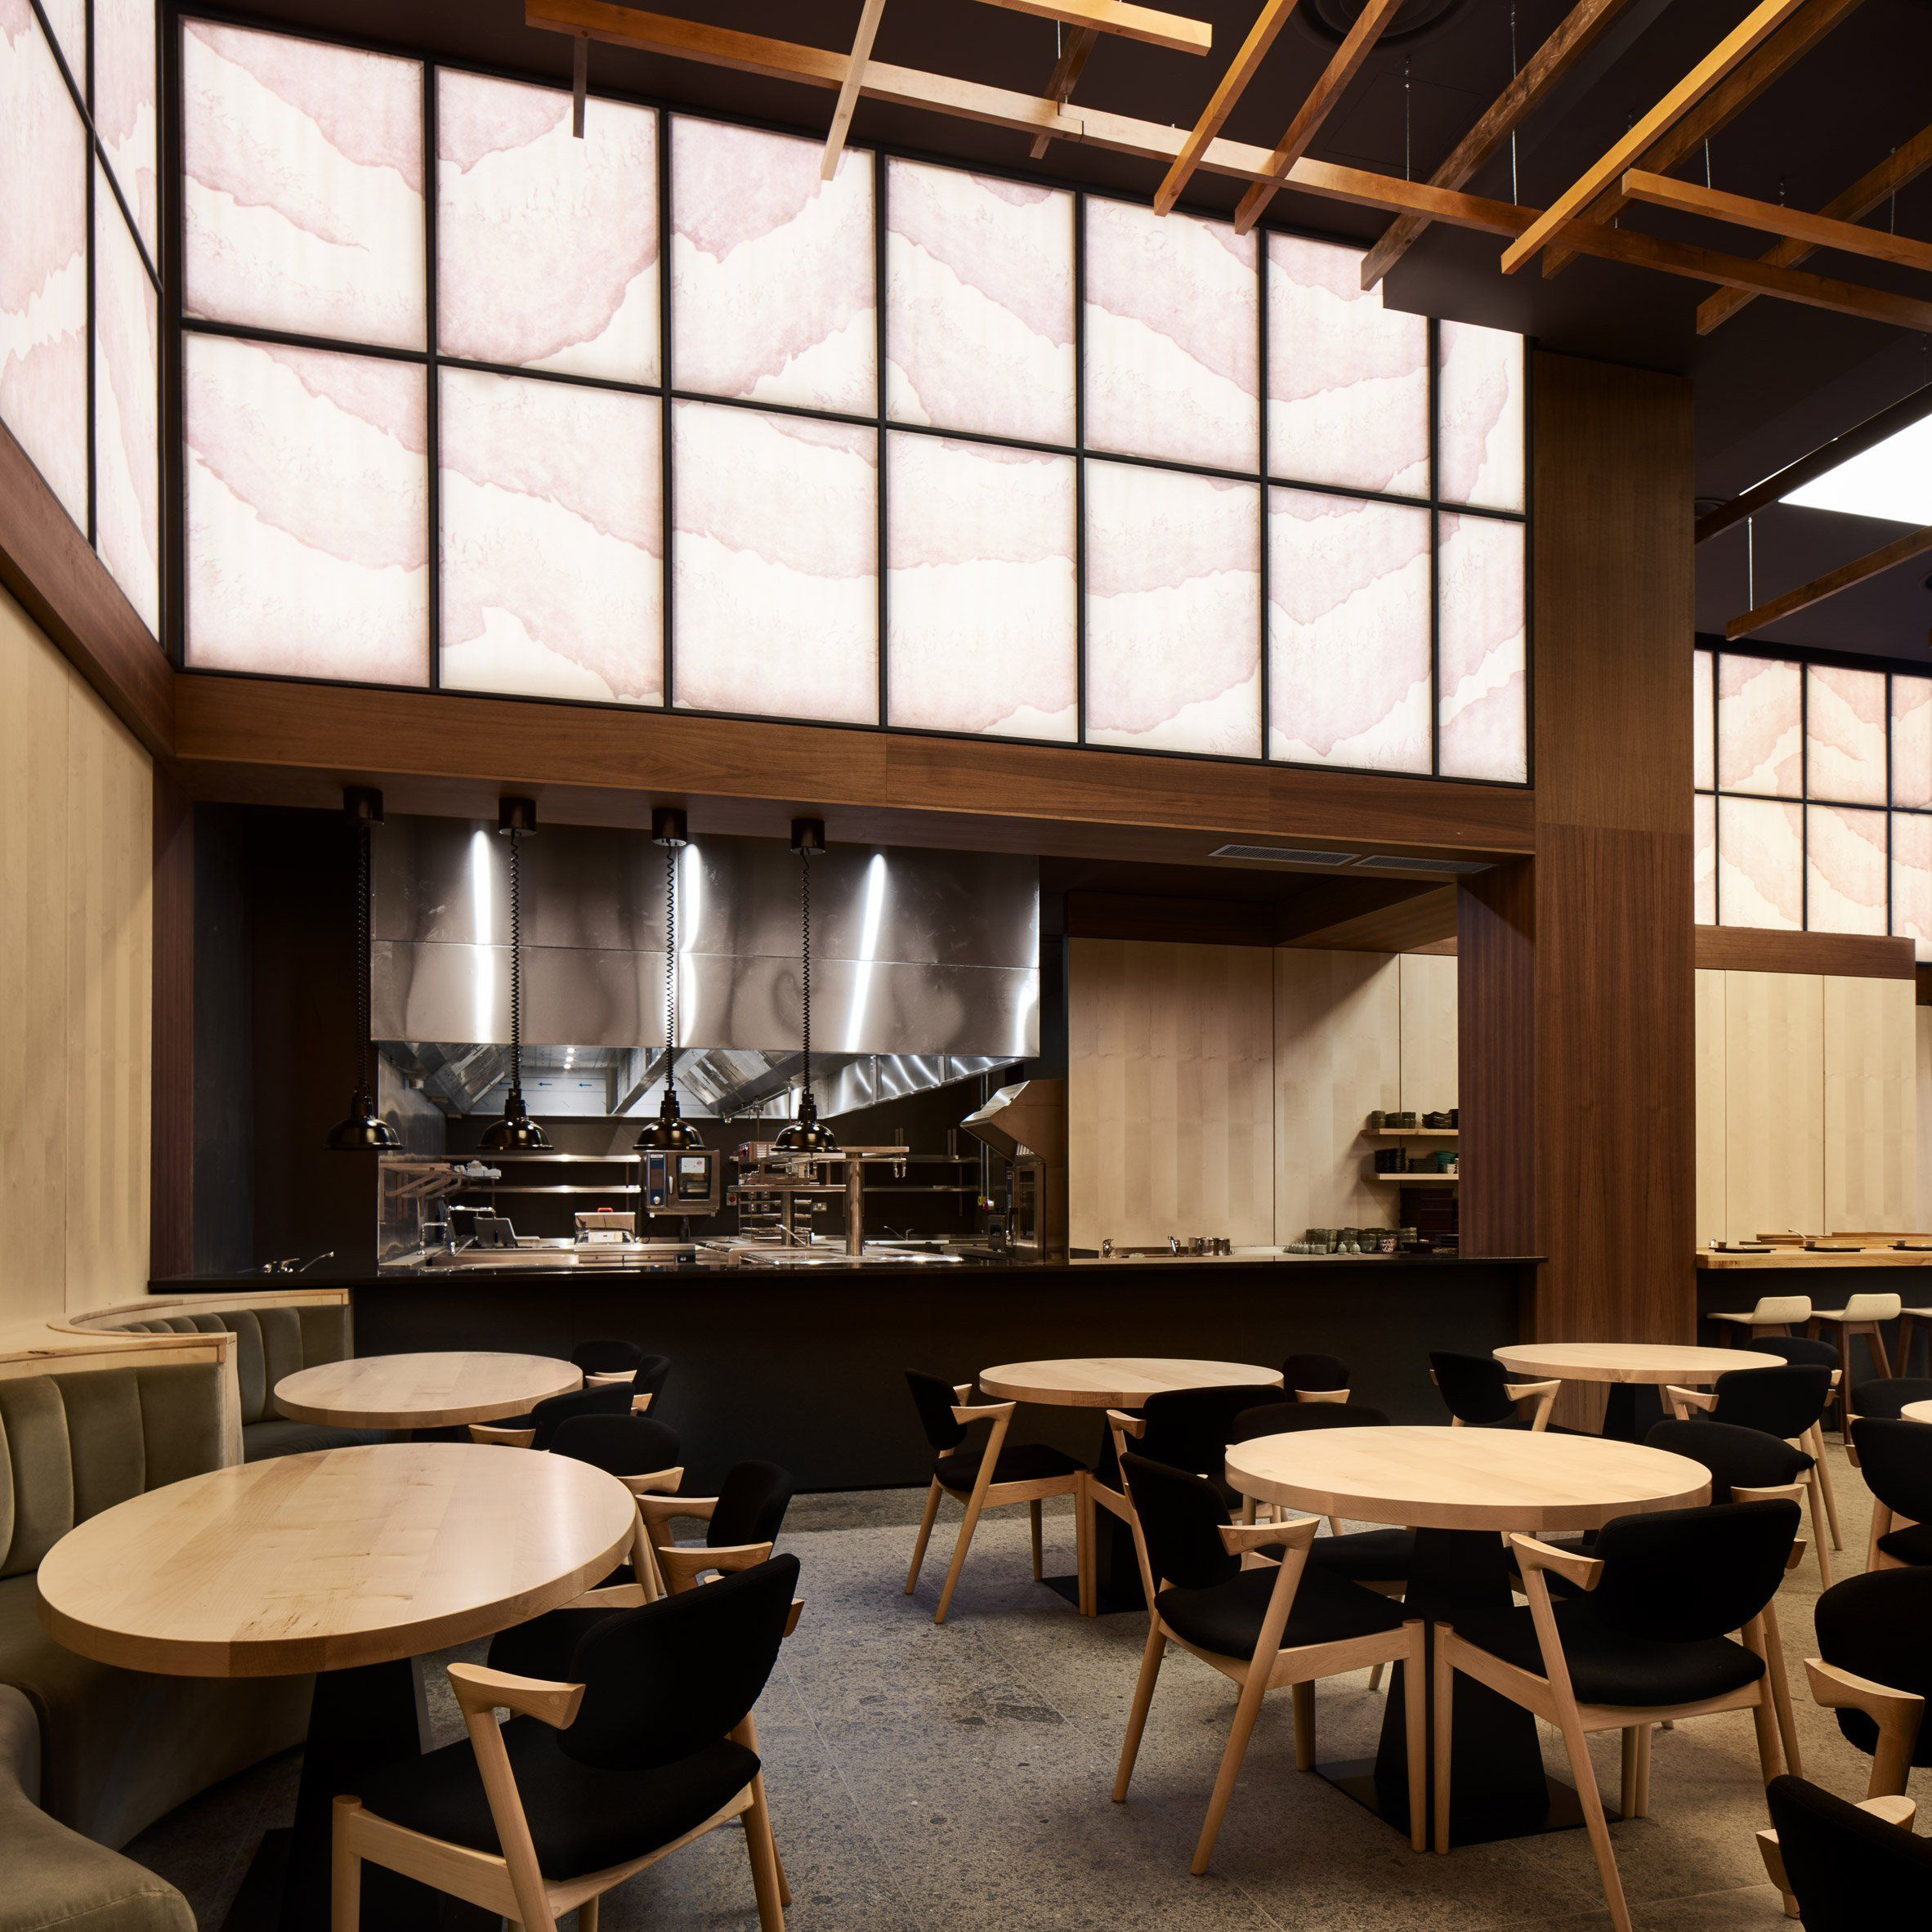 Yen restaurant by Sybarite Architecture | Home decor | Pinterest | Raum